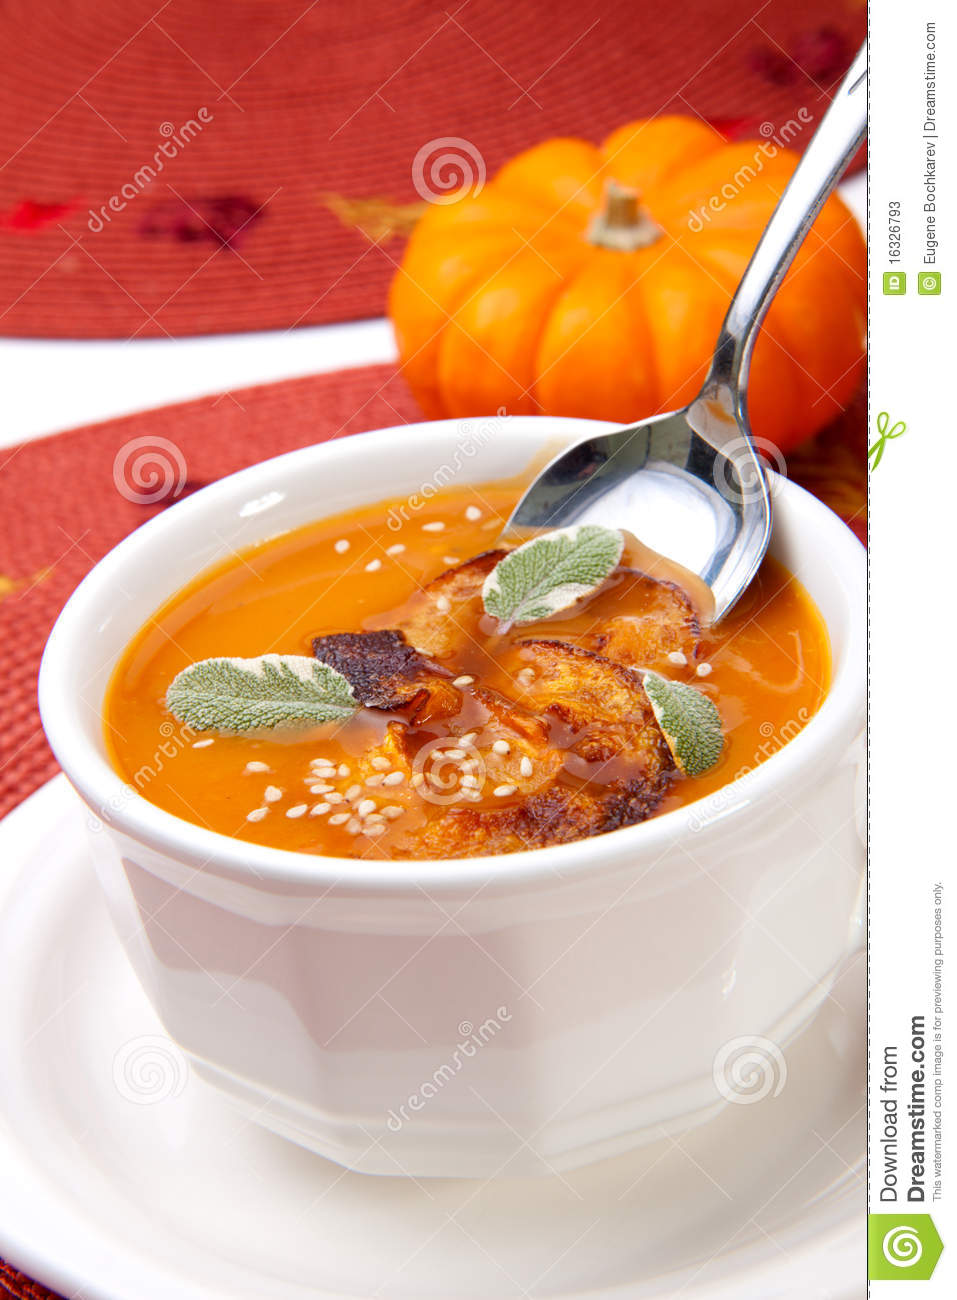 ... spicy roasted pumpkin soup with pumpkin crisps, sage and sesame seads